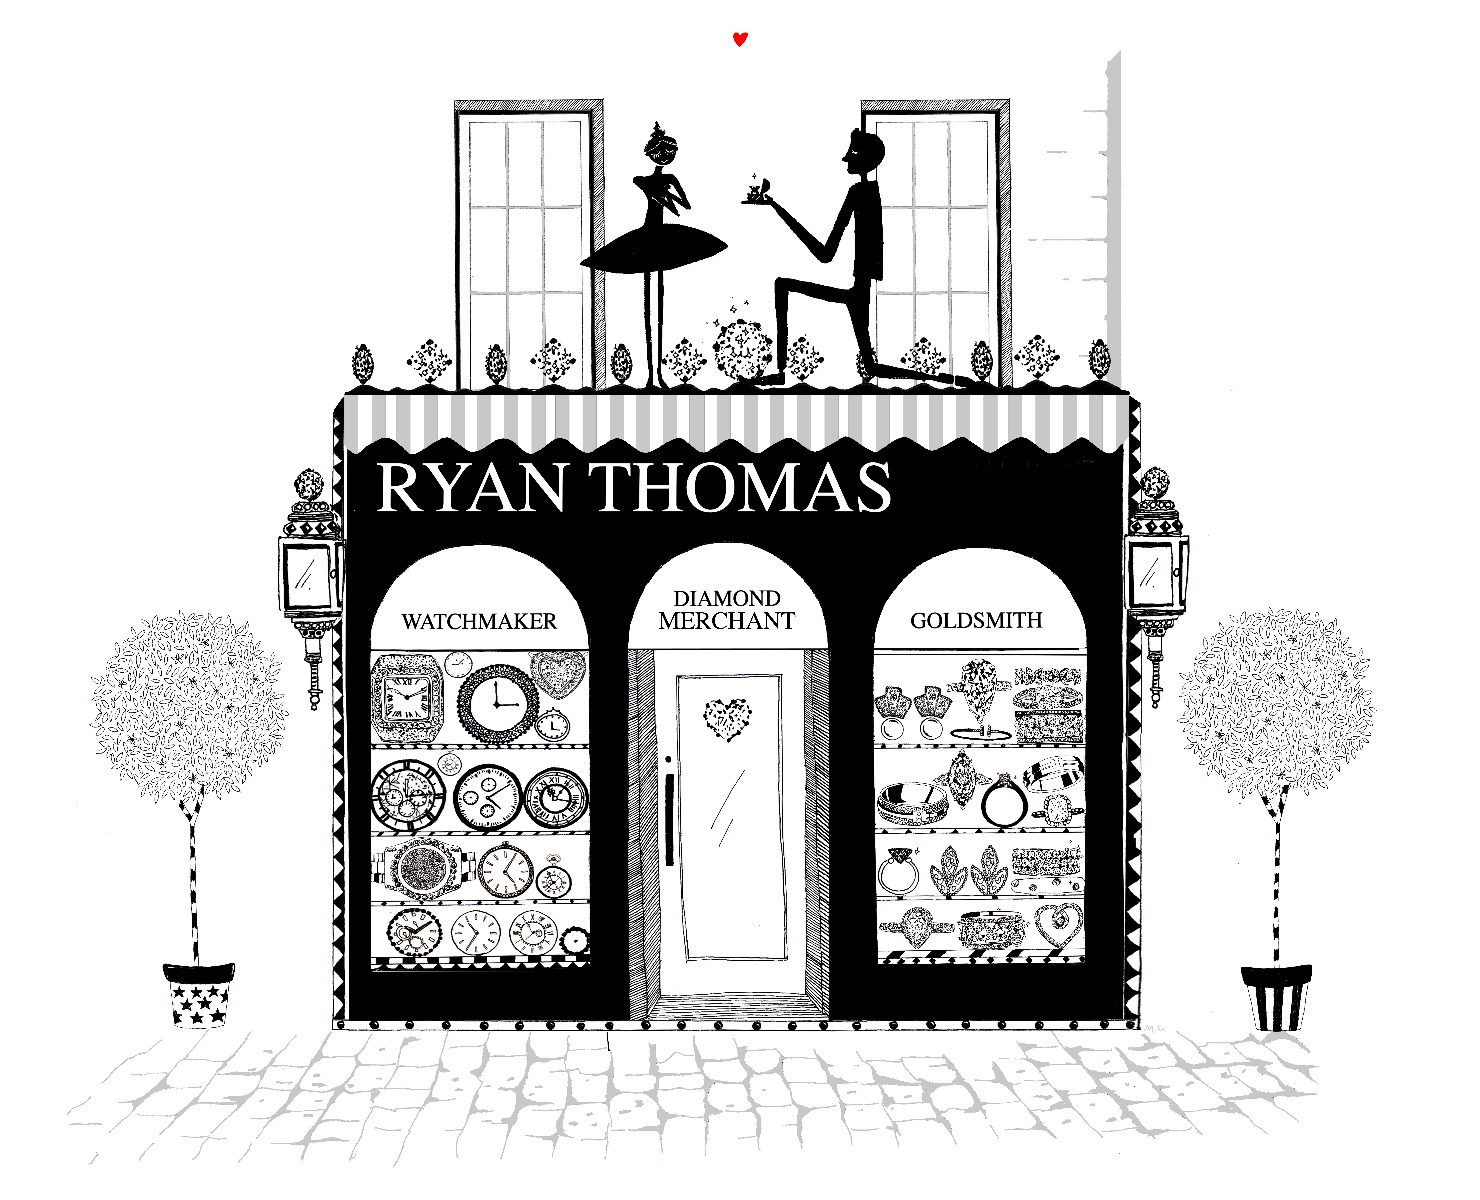 Ryan Thomas Jewellers